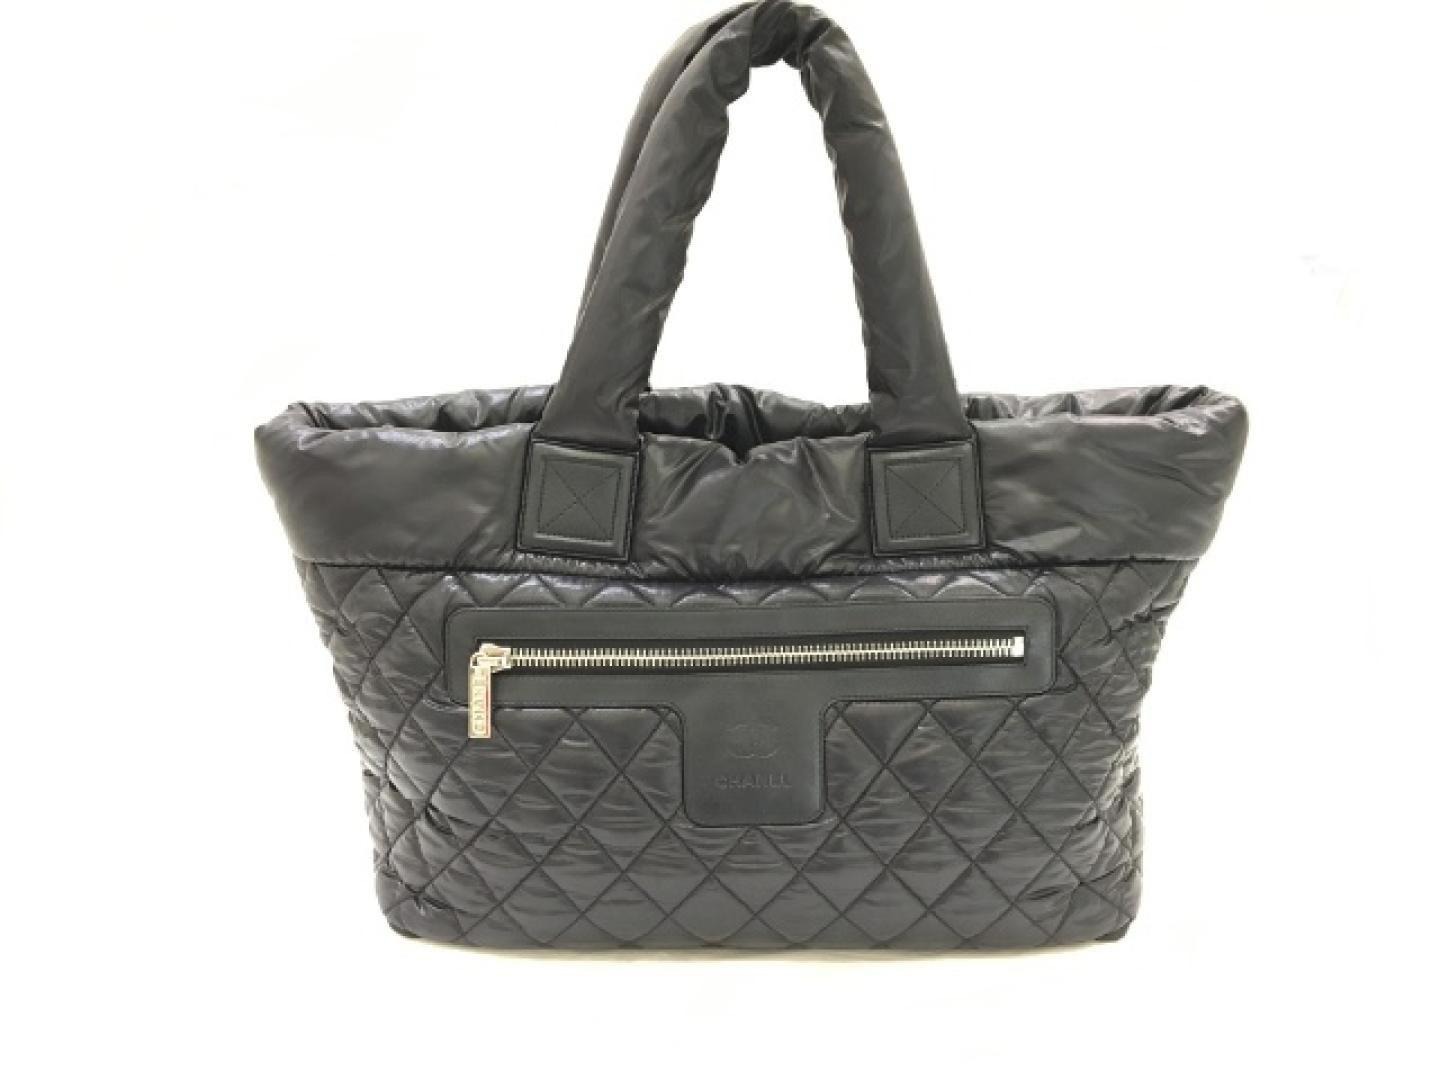 c928b6ecefaa Chanel Coco Cocoon Tote Bag Quilted Nylon Black in Black - Lyst